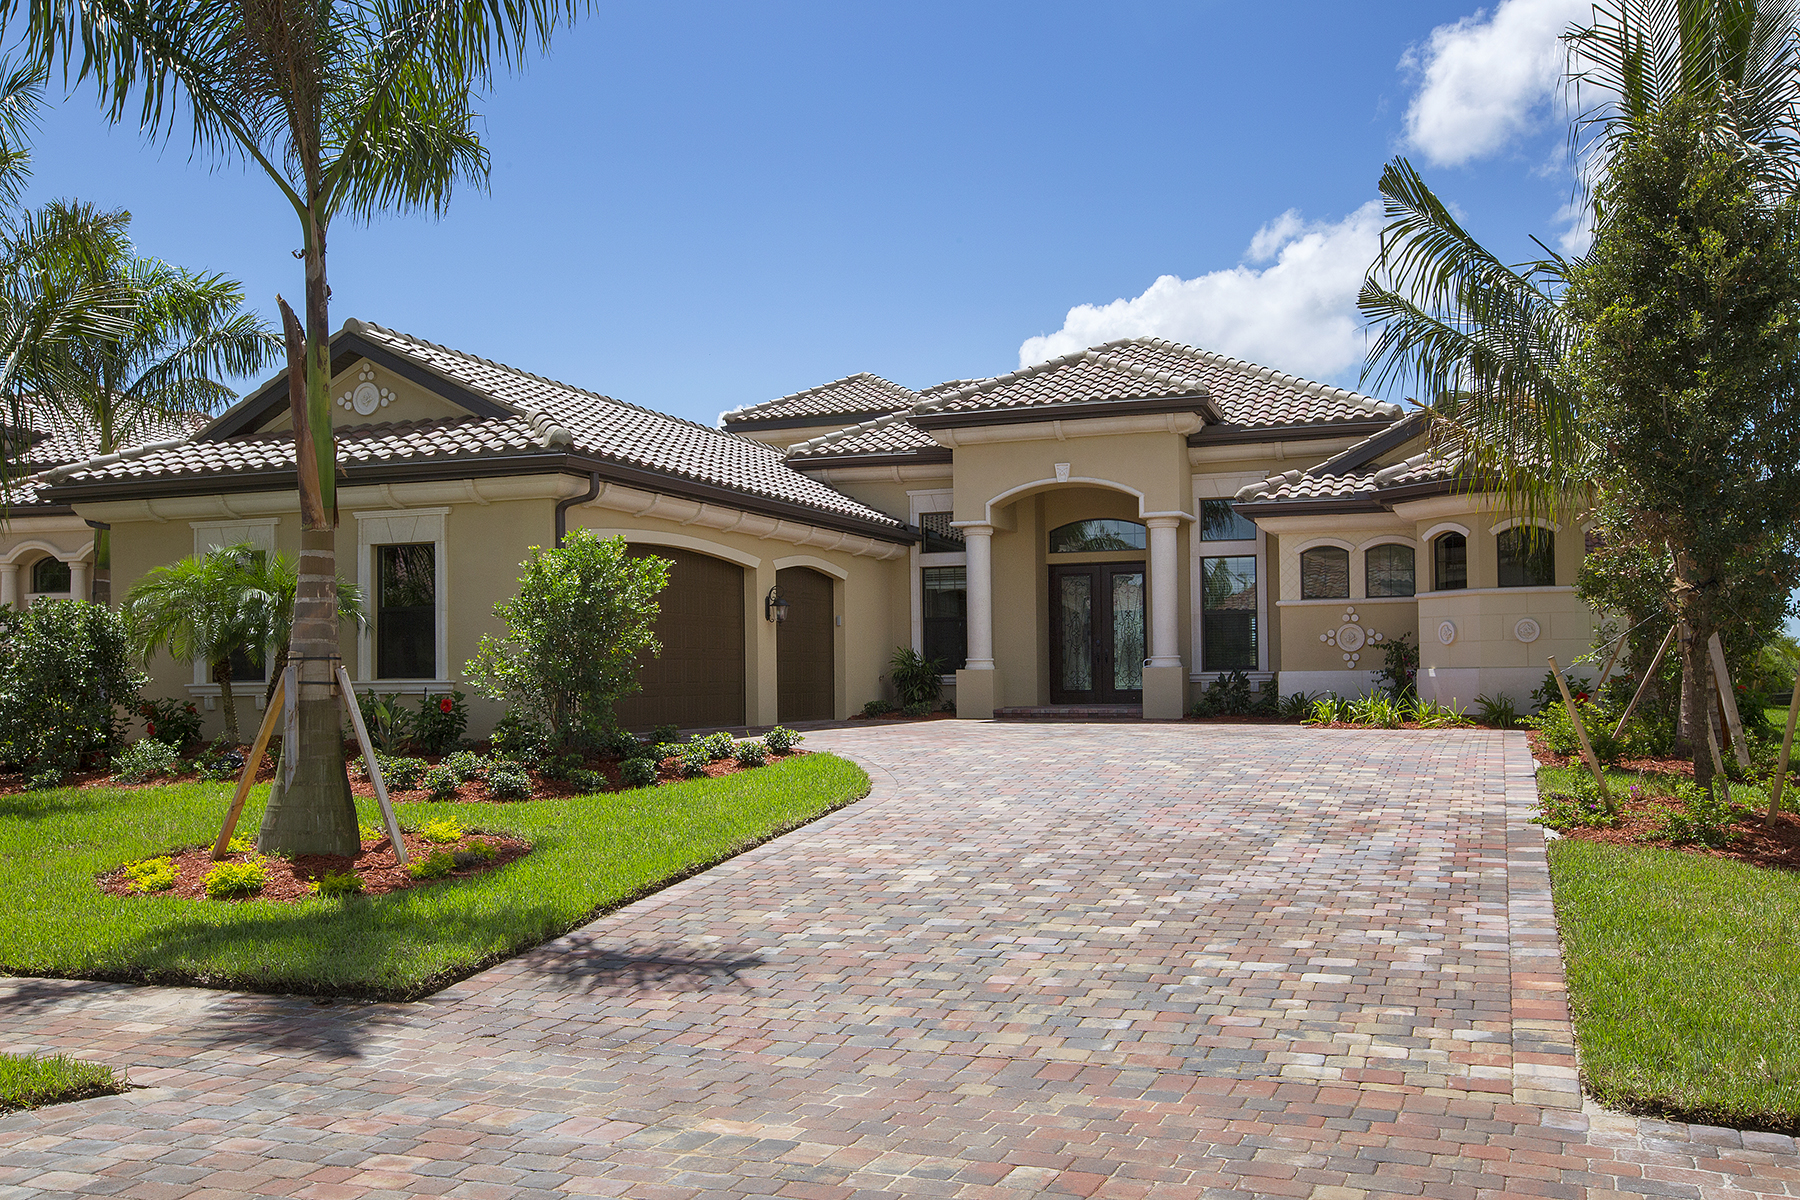 Single Family Home for Sale at FIDDLER'S CREEK - RUNAWAY BAY 3278 Runaway Ln, Naples, Florida 34114 United States